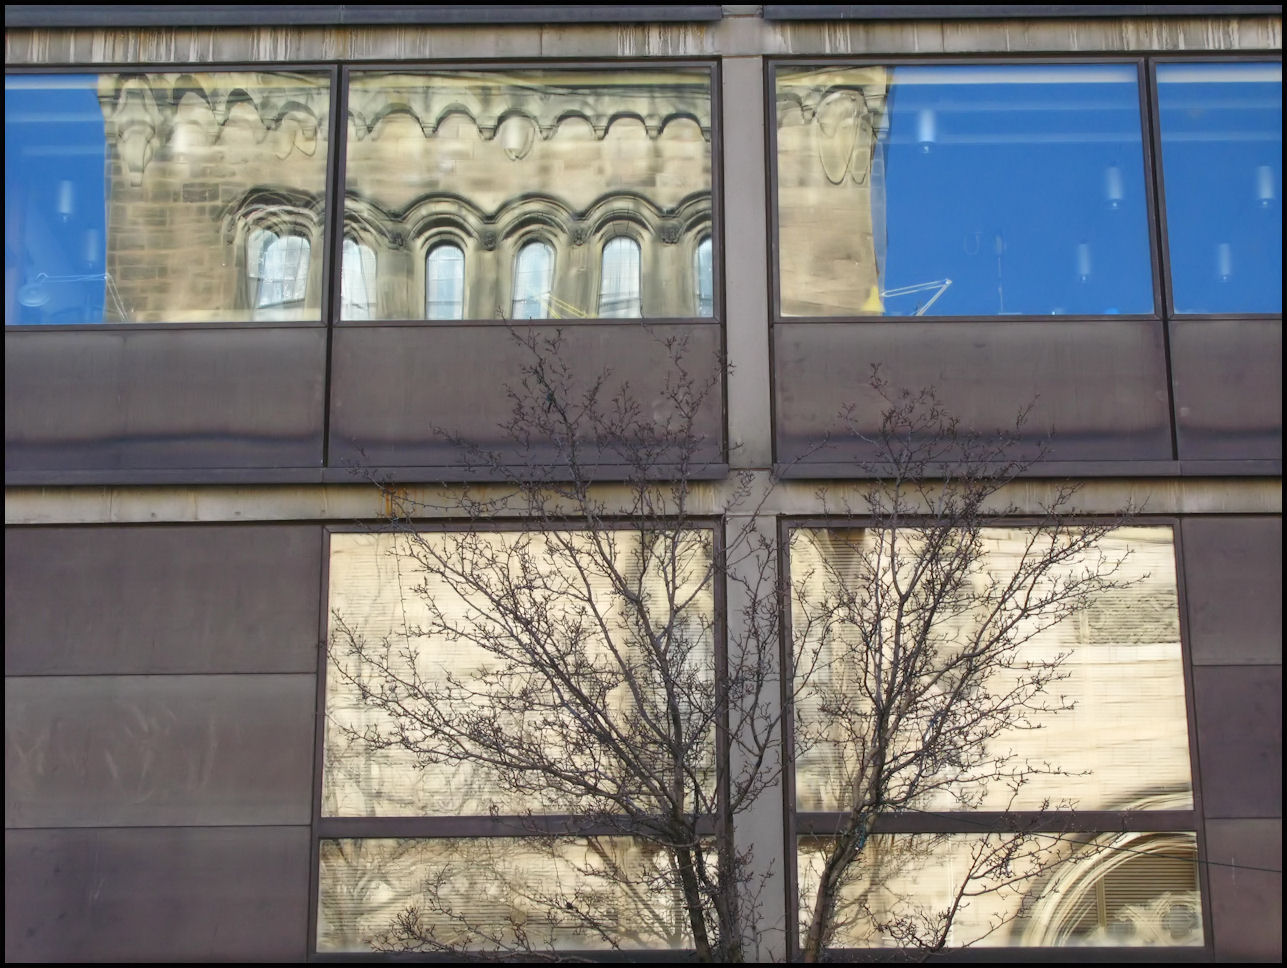 File:Yale Center for British Art- facade with reflections ...